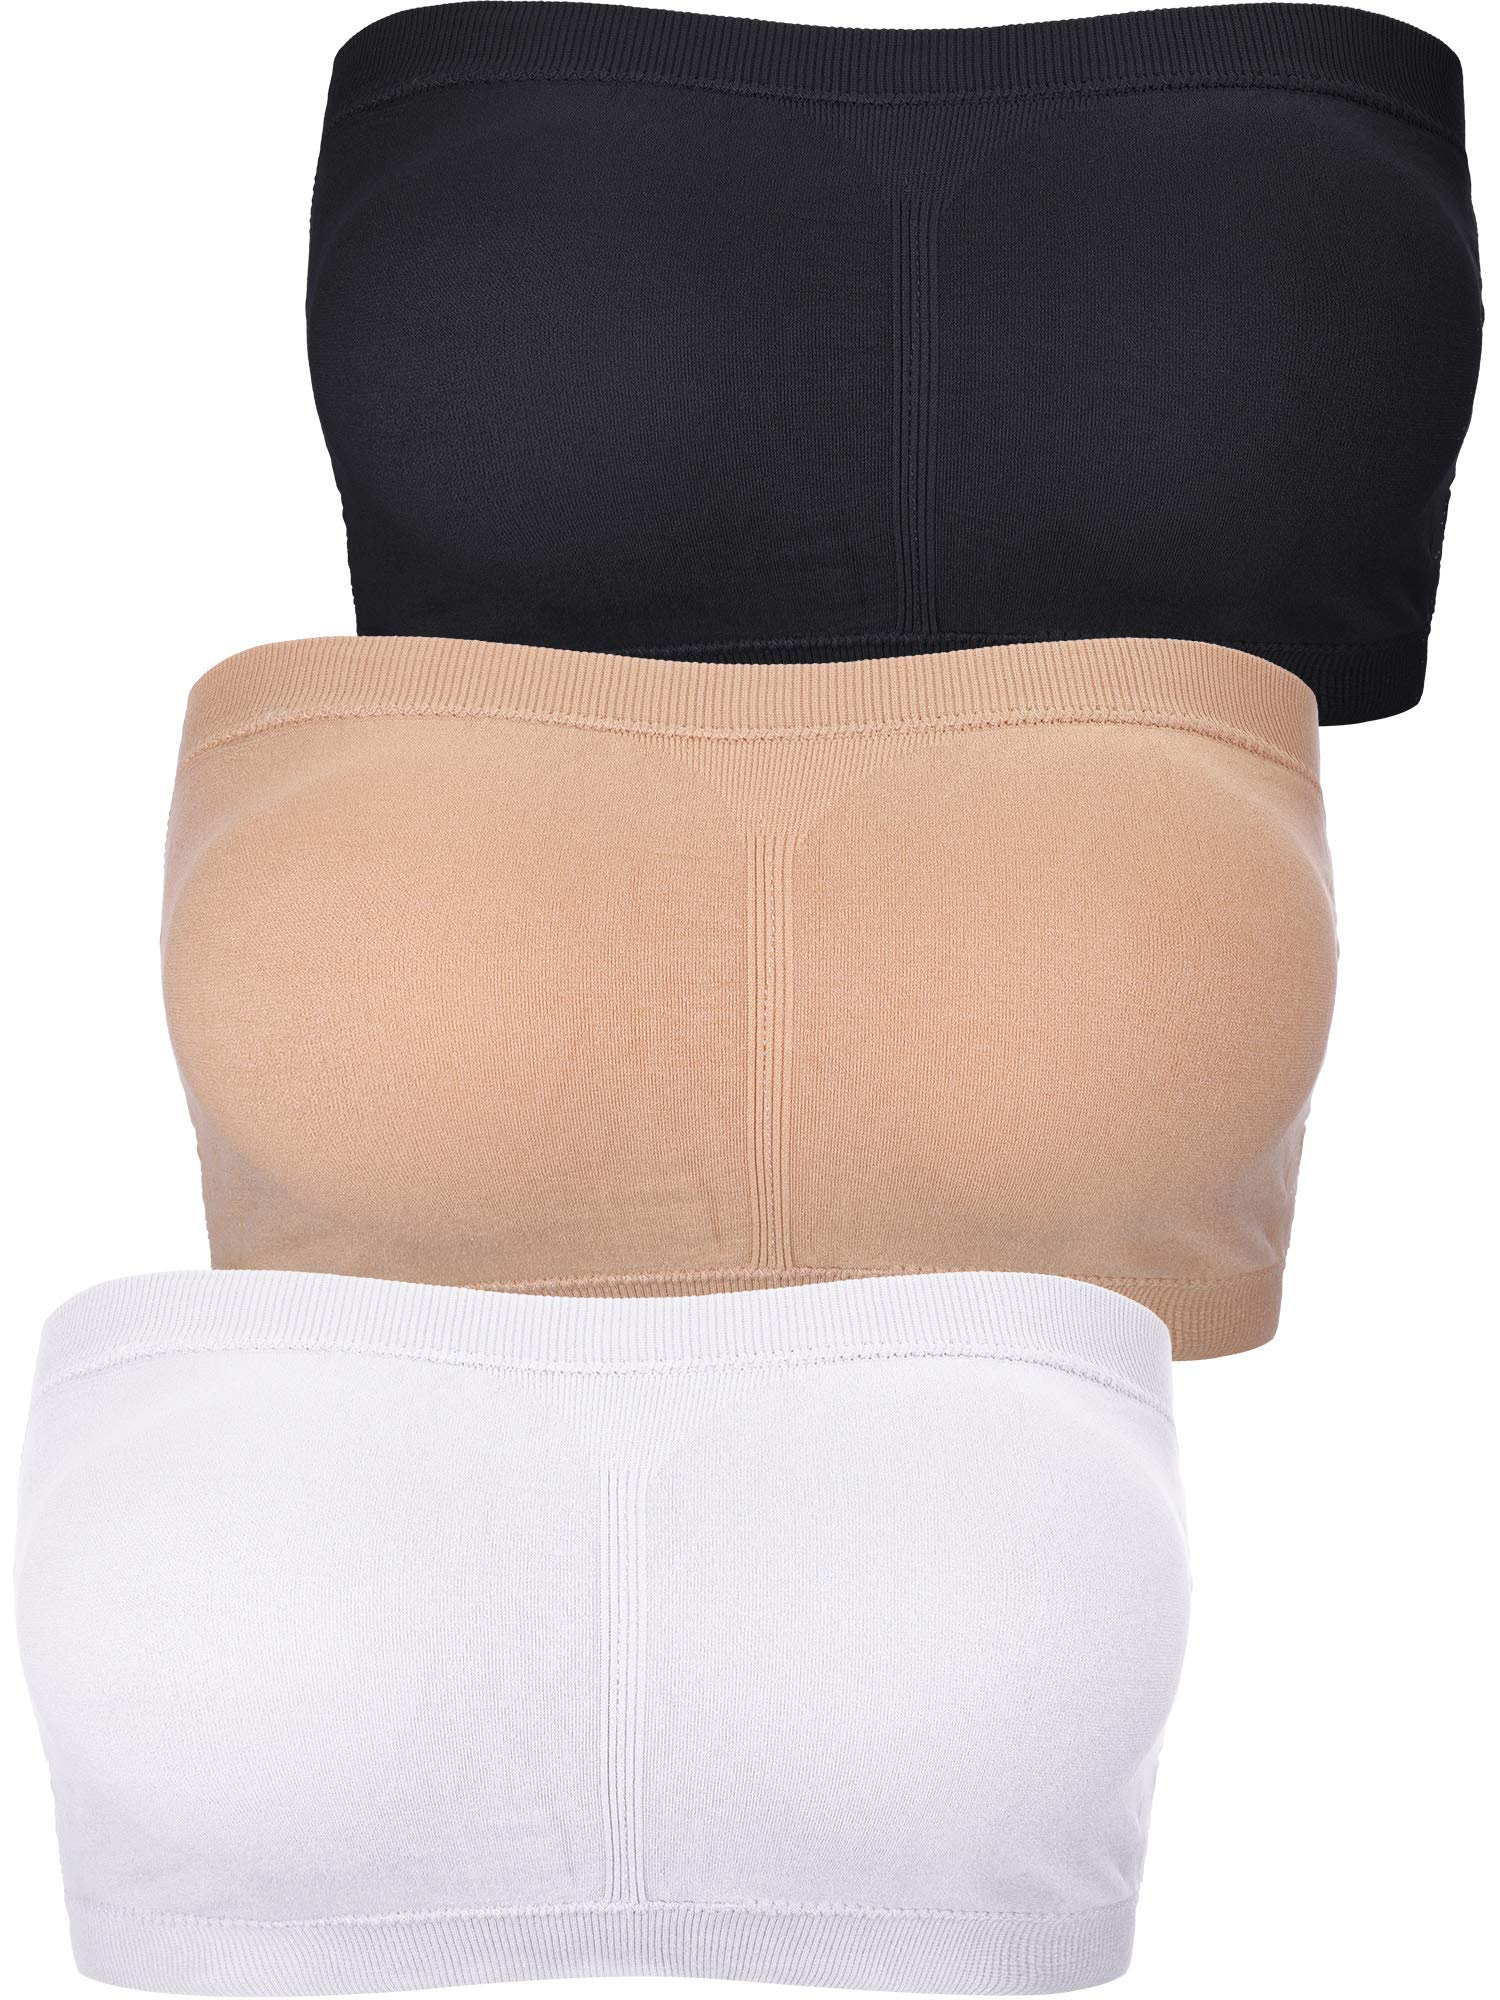 Boao Women Padded Strapless Soft Bra Seamless Bandeau Tube Top Bra 3 Pieces